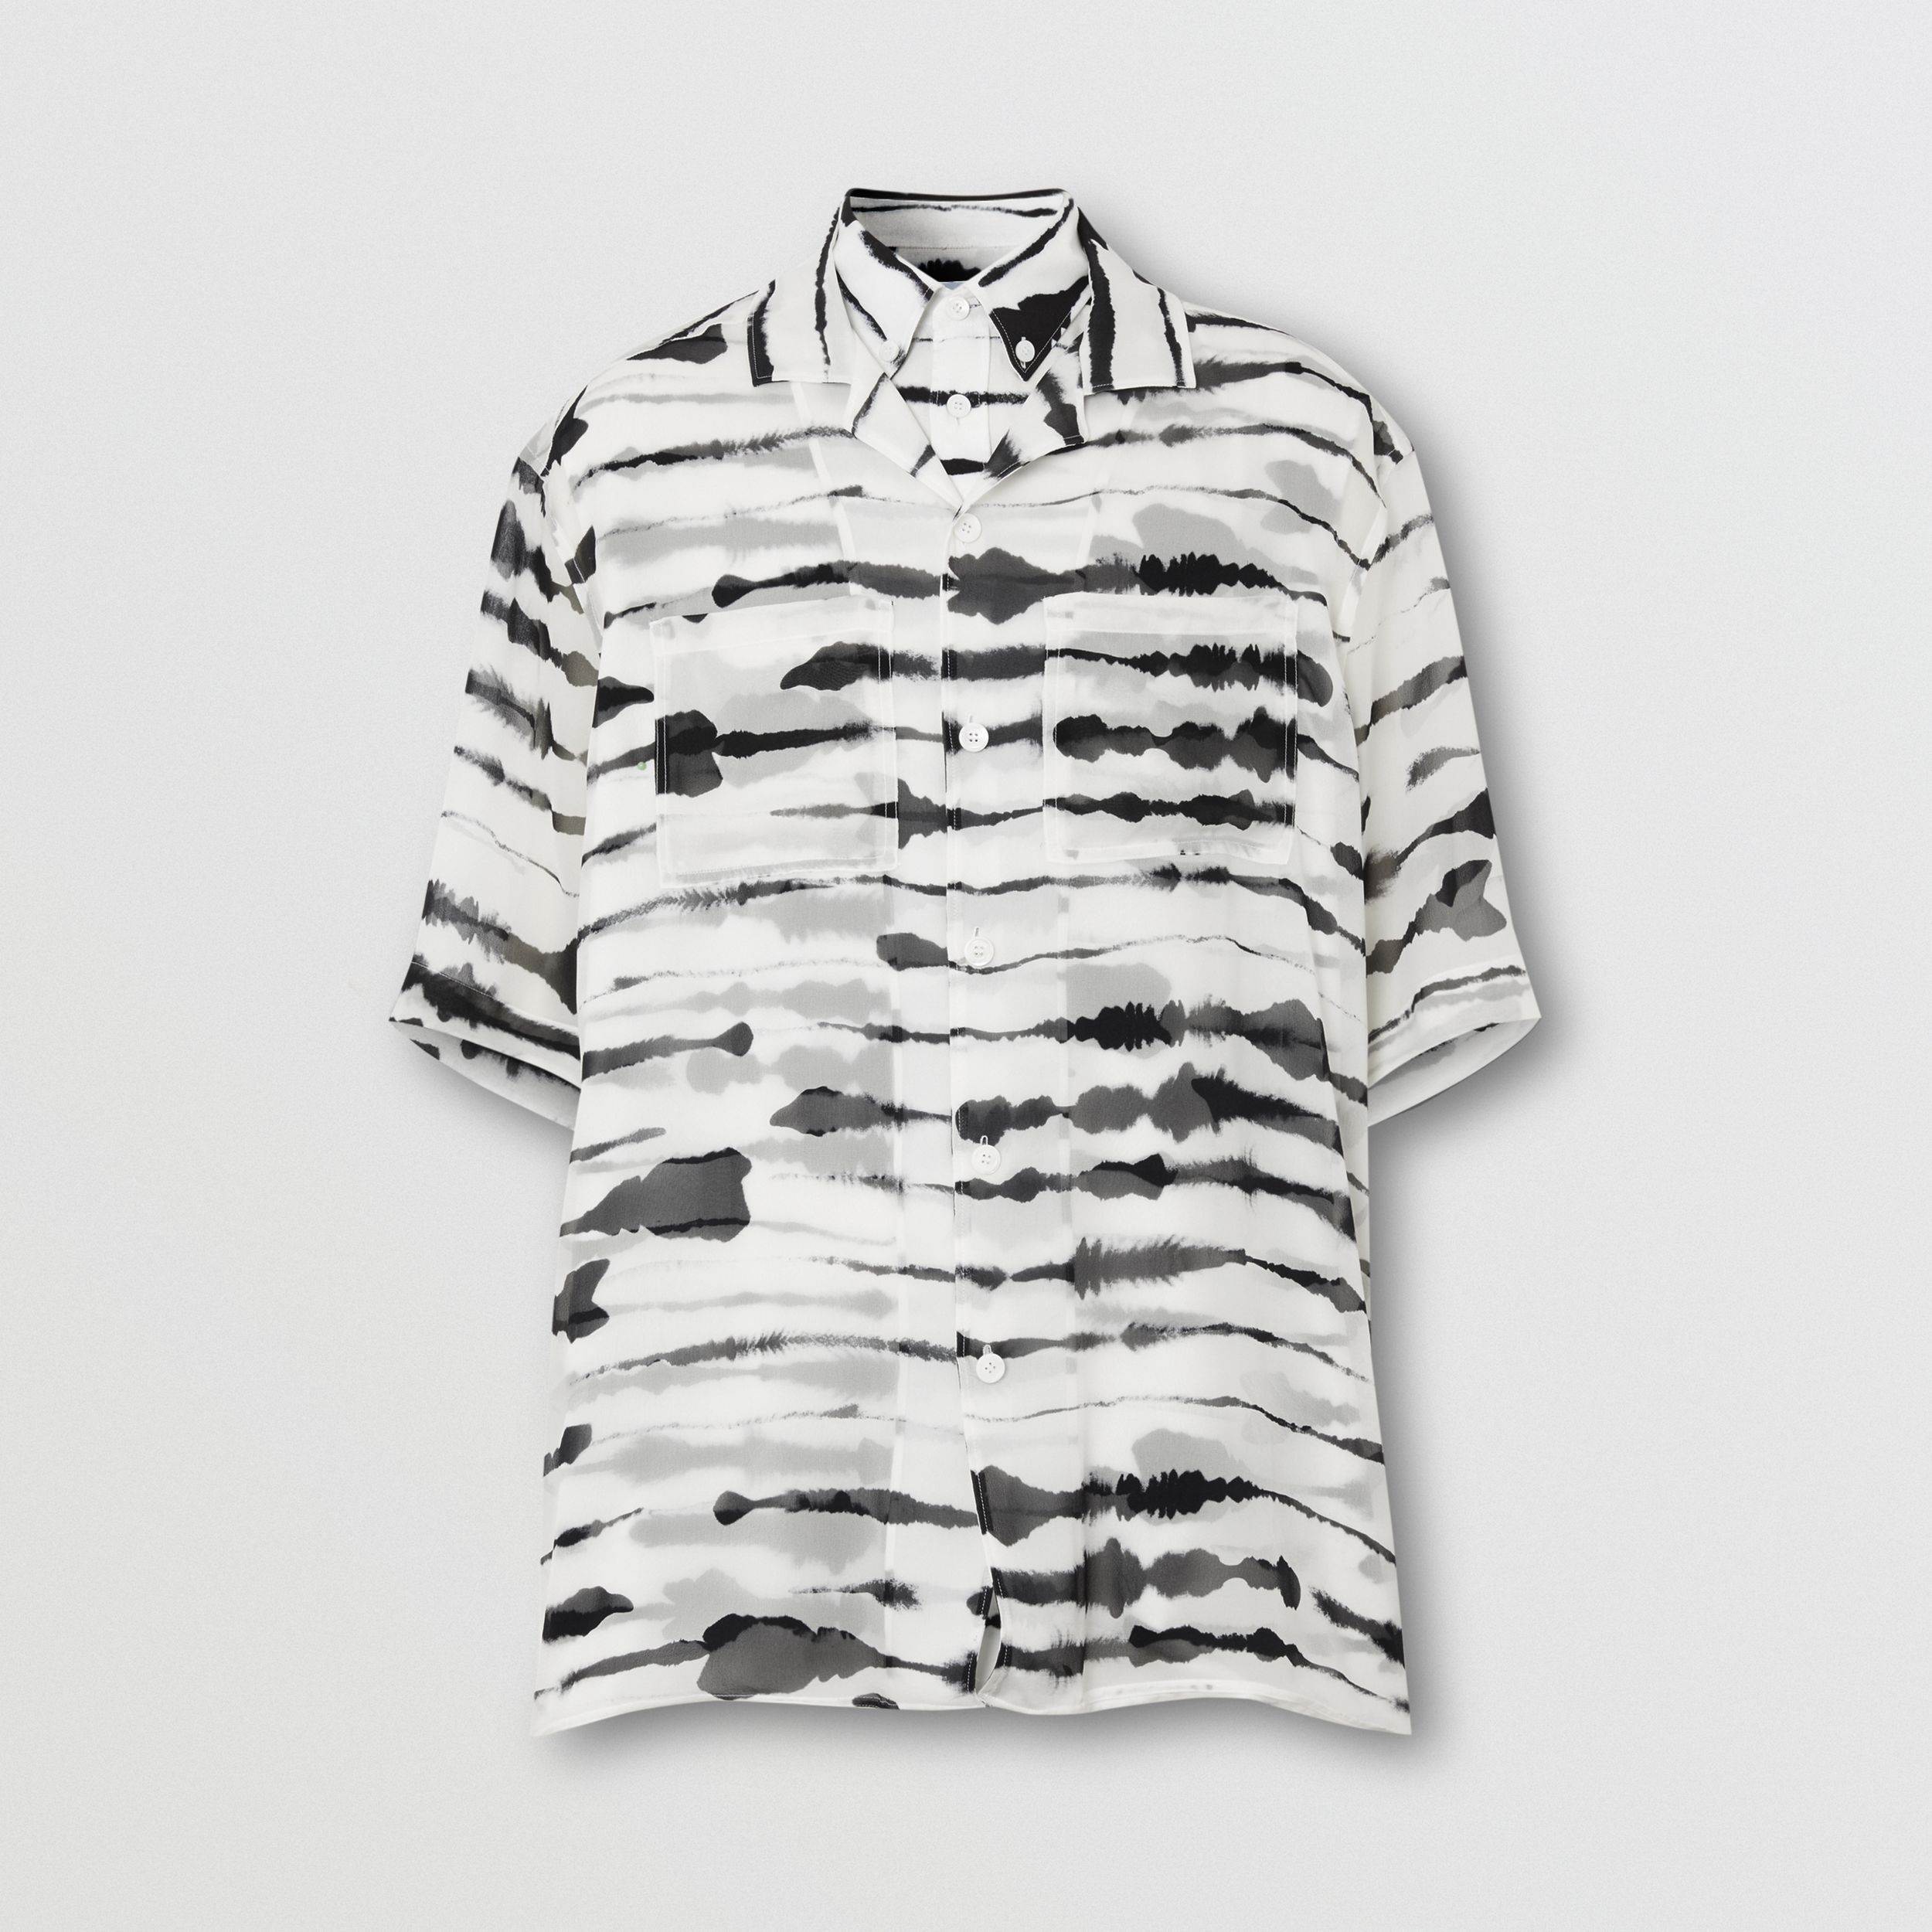 Short-sleeve Silk Overlay Watercolour Print Twill Shirt in Monochrome - Men | Burberry - 4